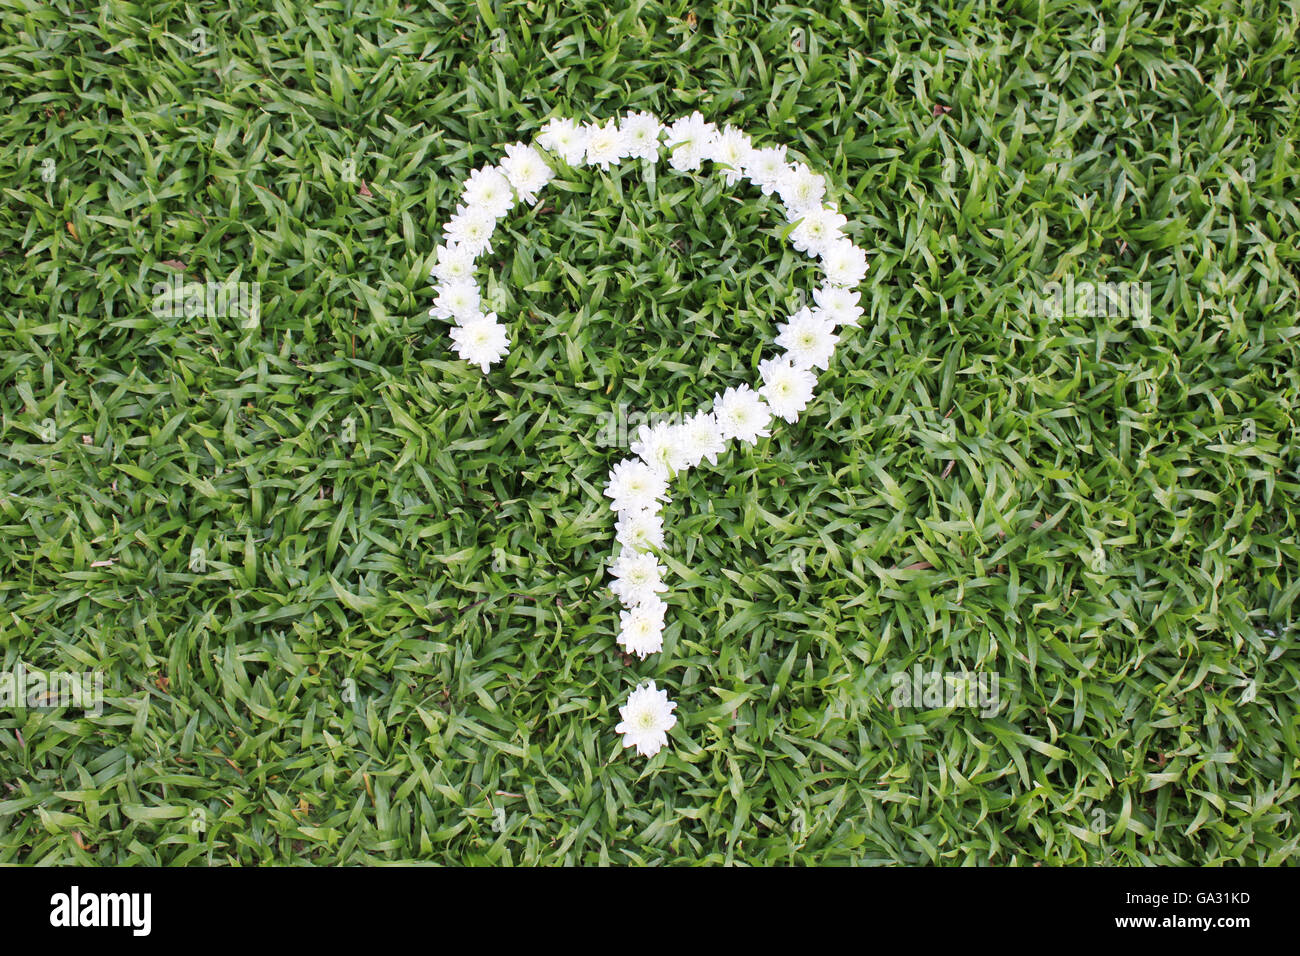 Question mark made from daisy flowers on green grass background, spring time. Stock Photo